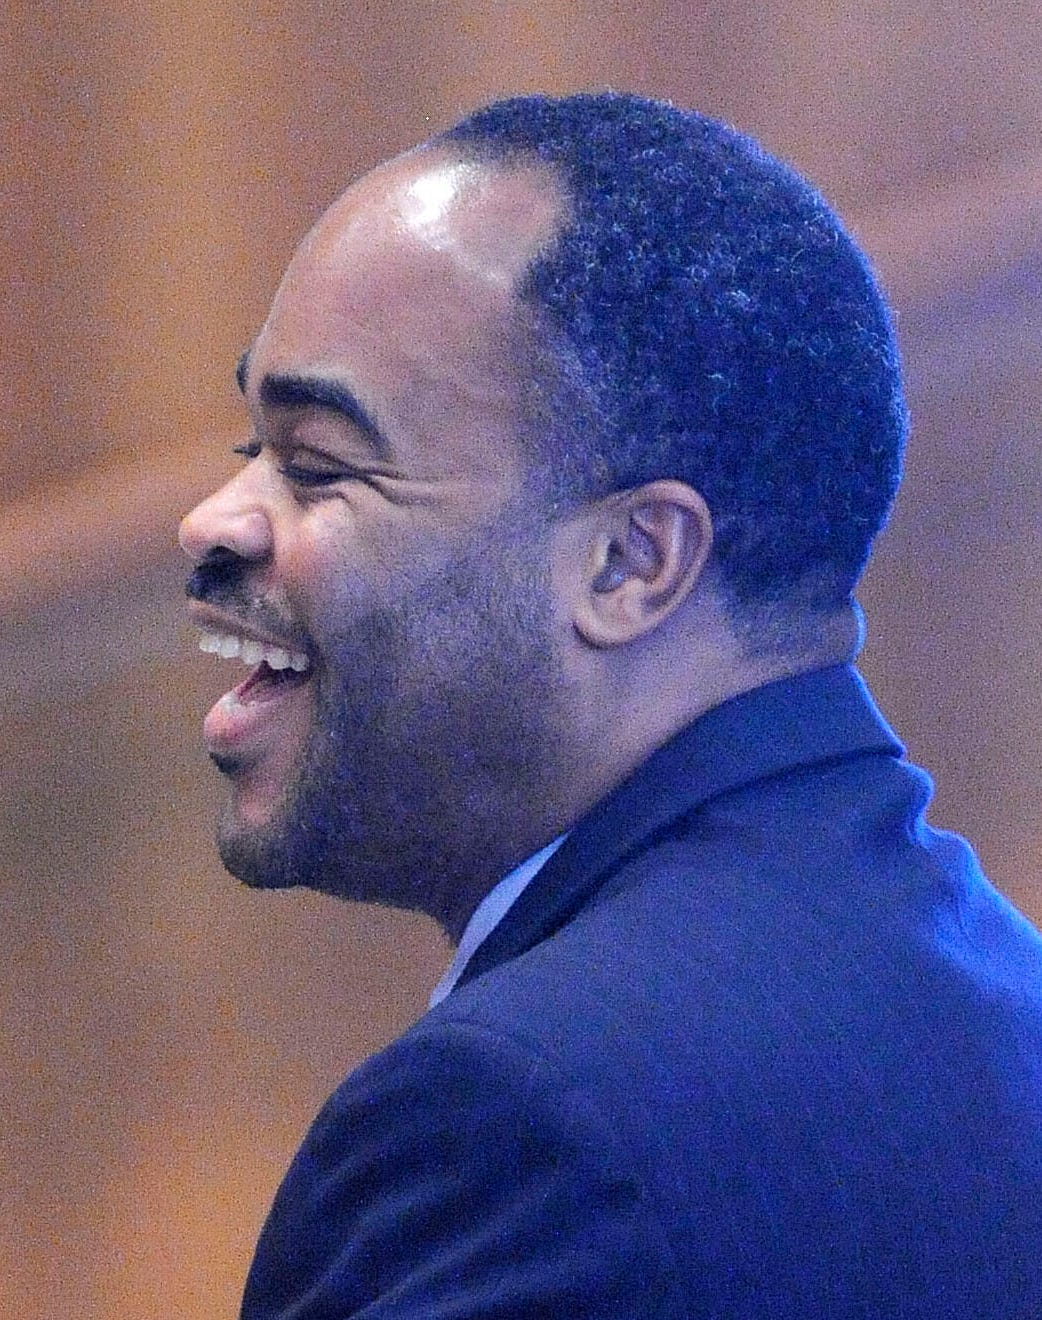 Detroit Police Cmdr. Johnny Thomas in 2016